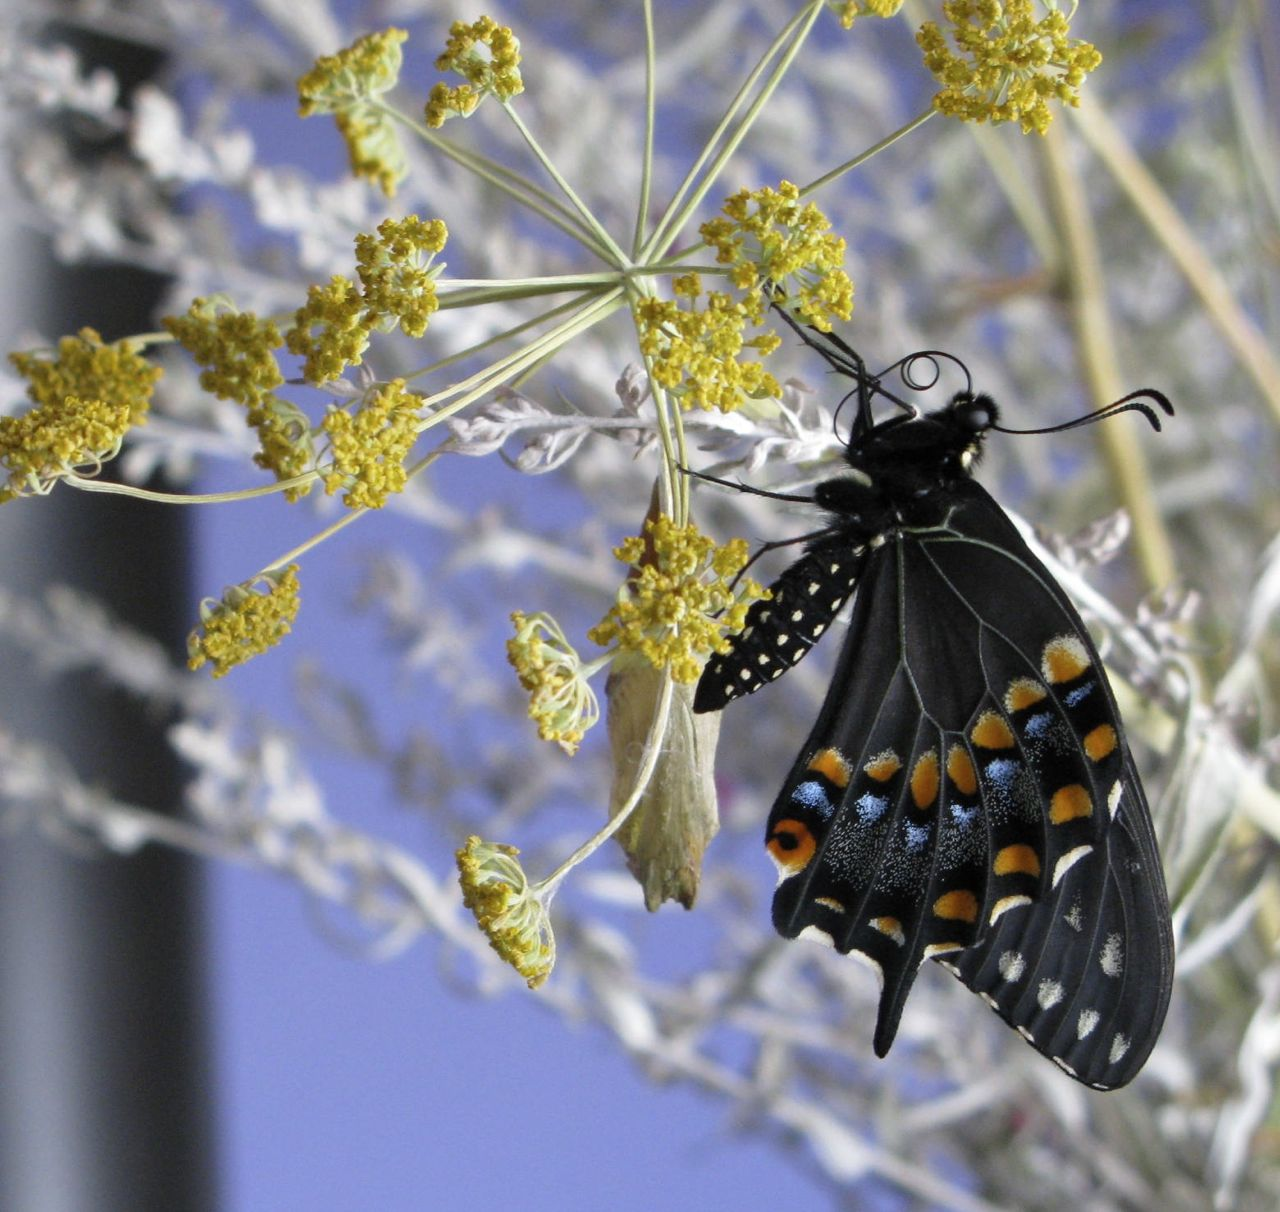 Eastern black swallowtail emerges from its chrysalis on a fennel pant from my garden